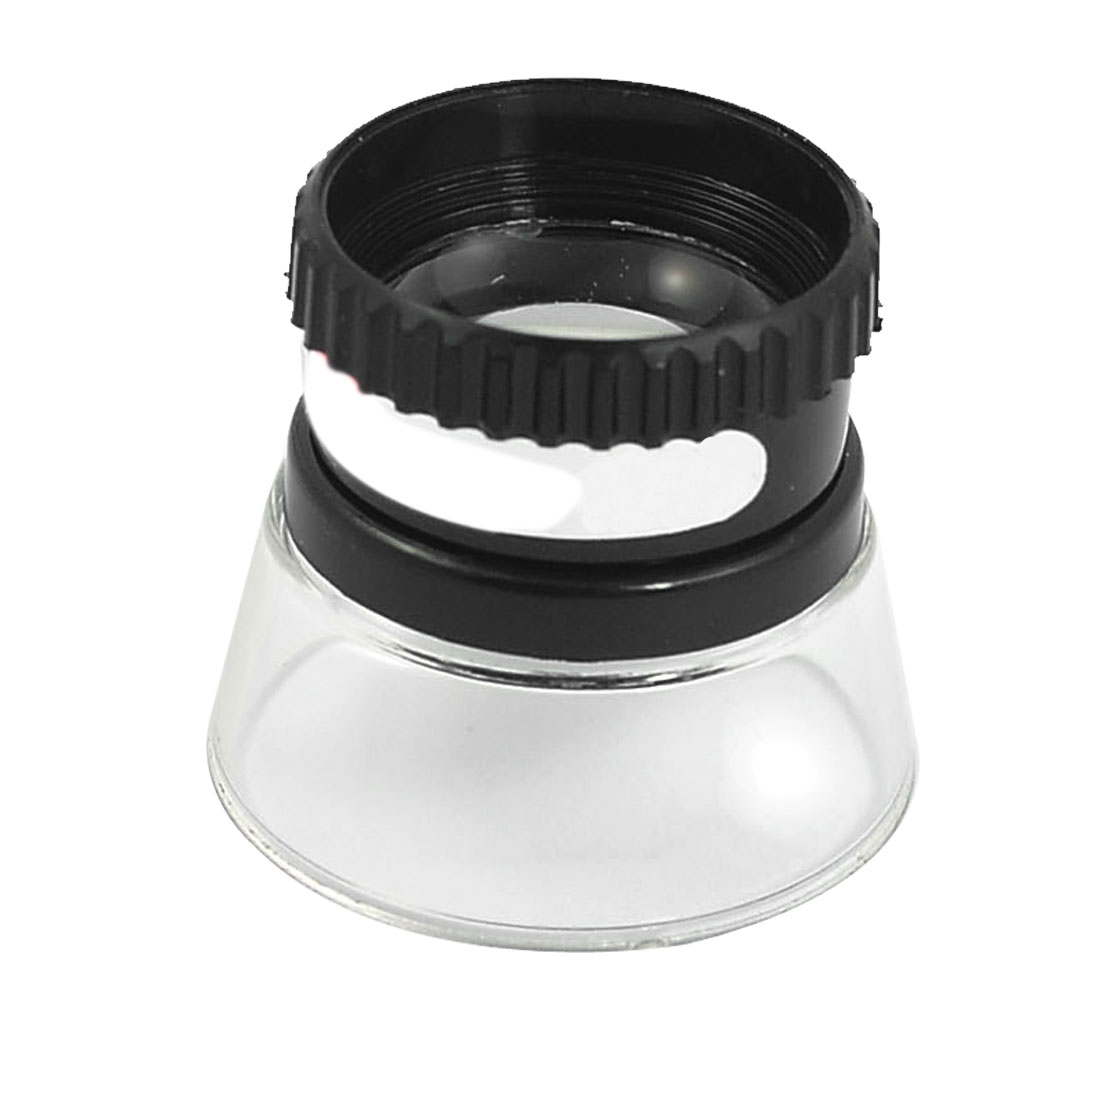 Plastic Shell 20mm Dia Lens 5X Magnifying Glass Photograph Pocket Magnifier